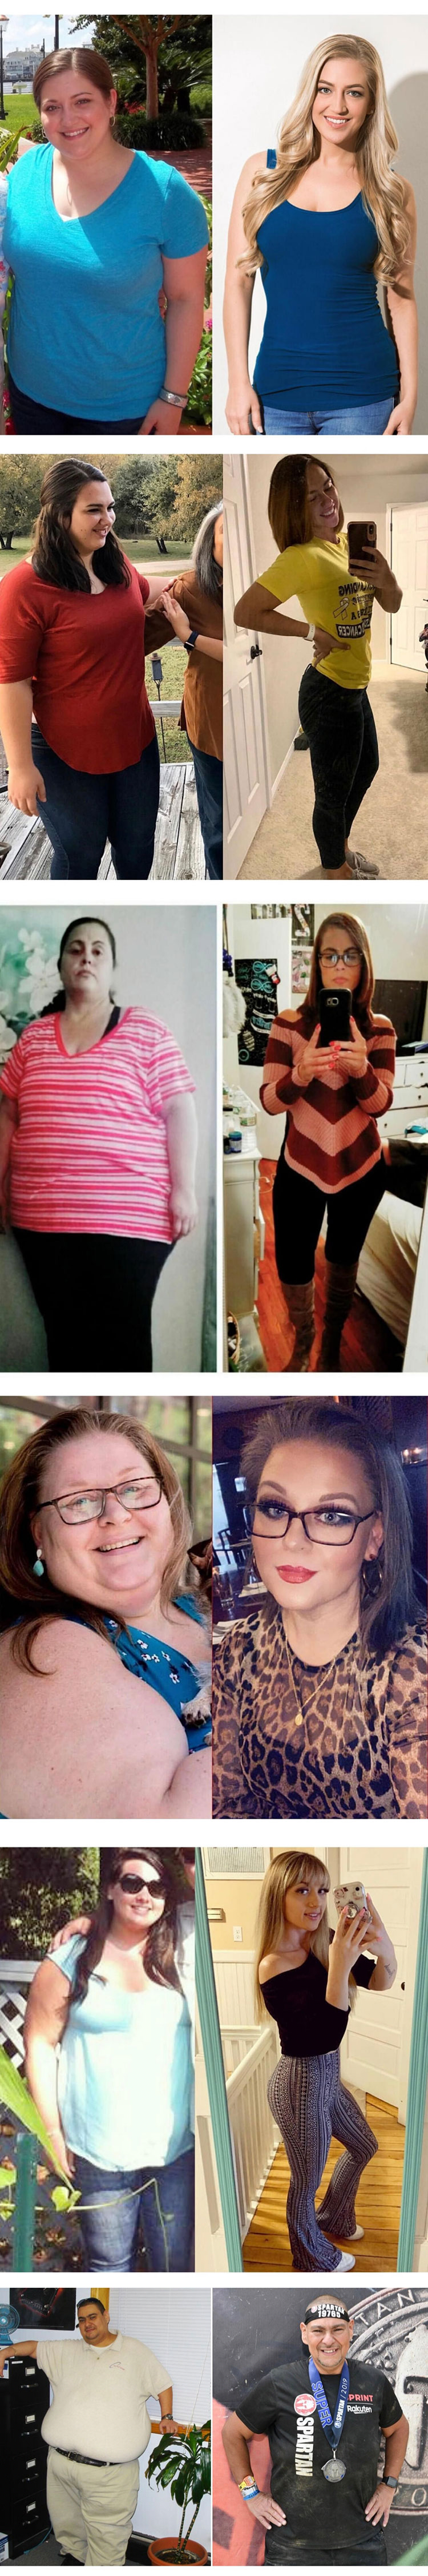 Nusbaum Weight Loss Before And After